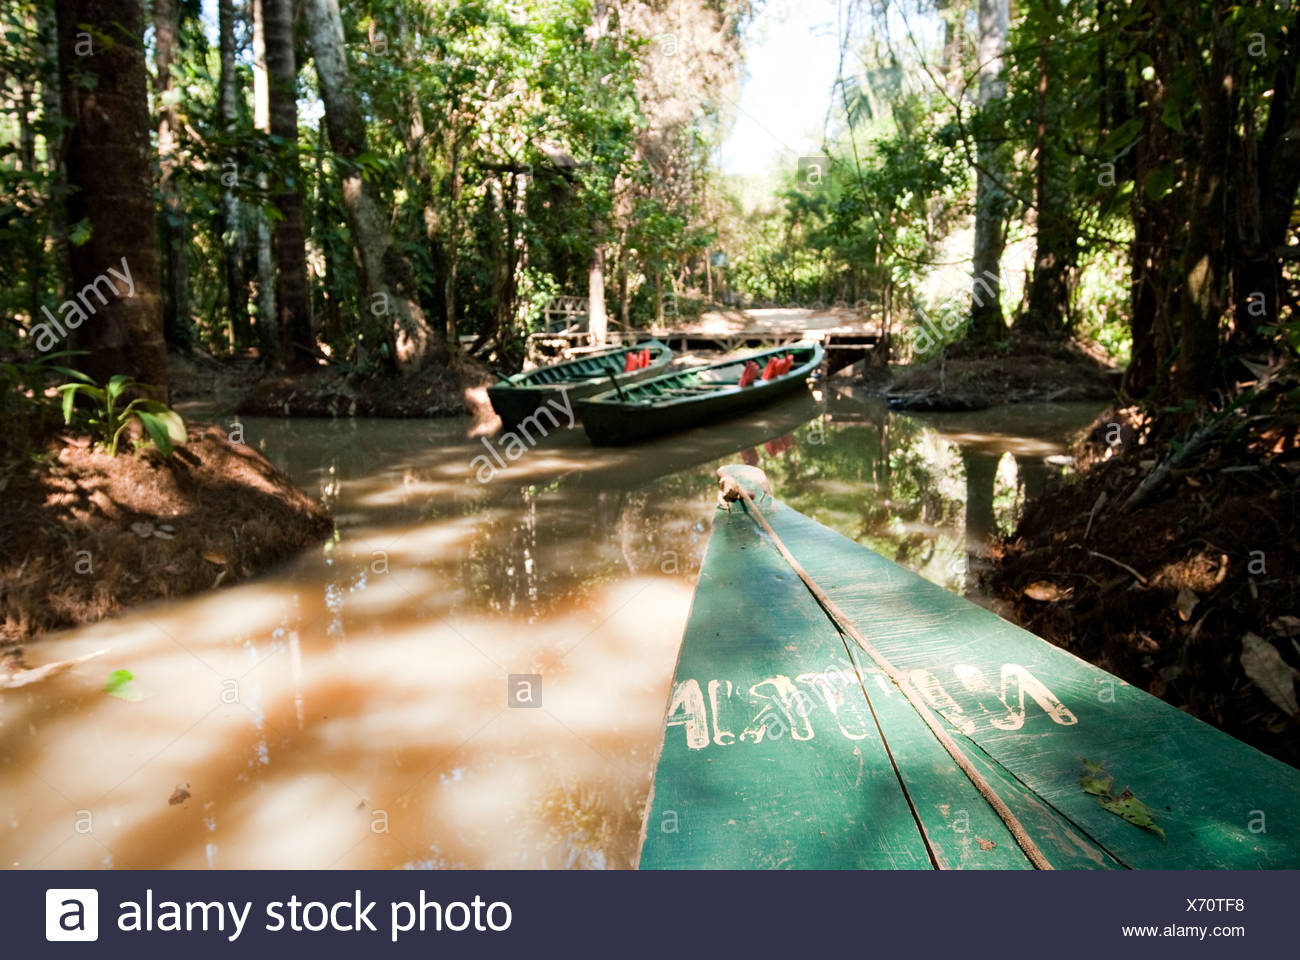 A wooden canoe made of Eucalyptus tree floats in the amazon river and connecting tributary rivers in the rainforest. - Stock Image